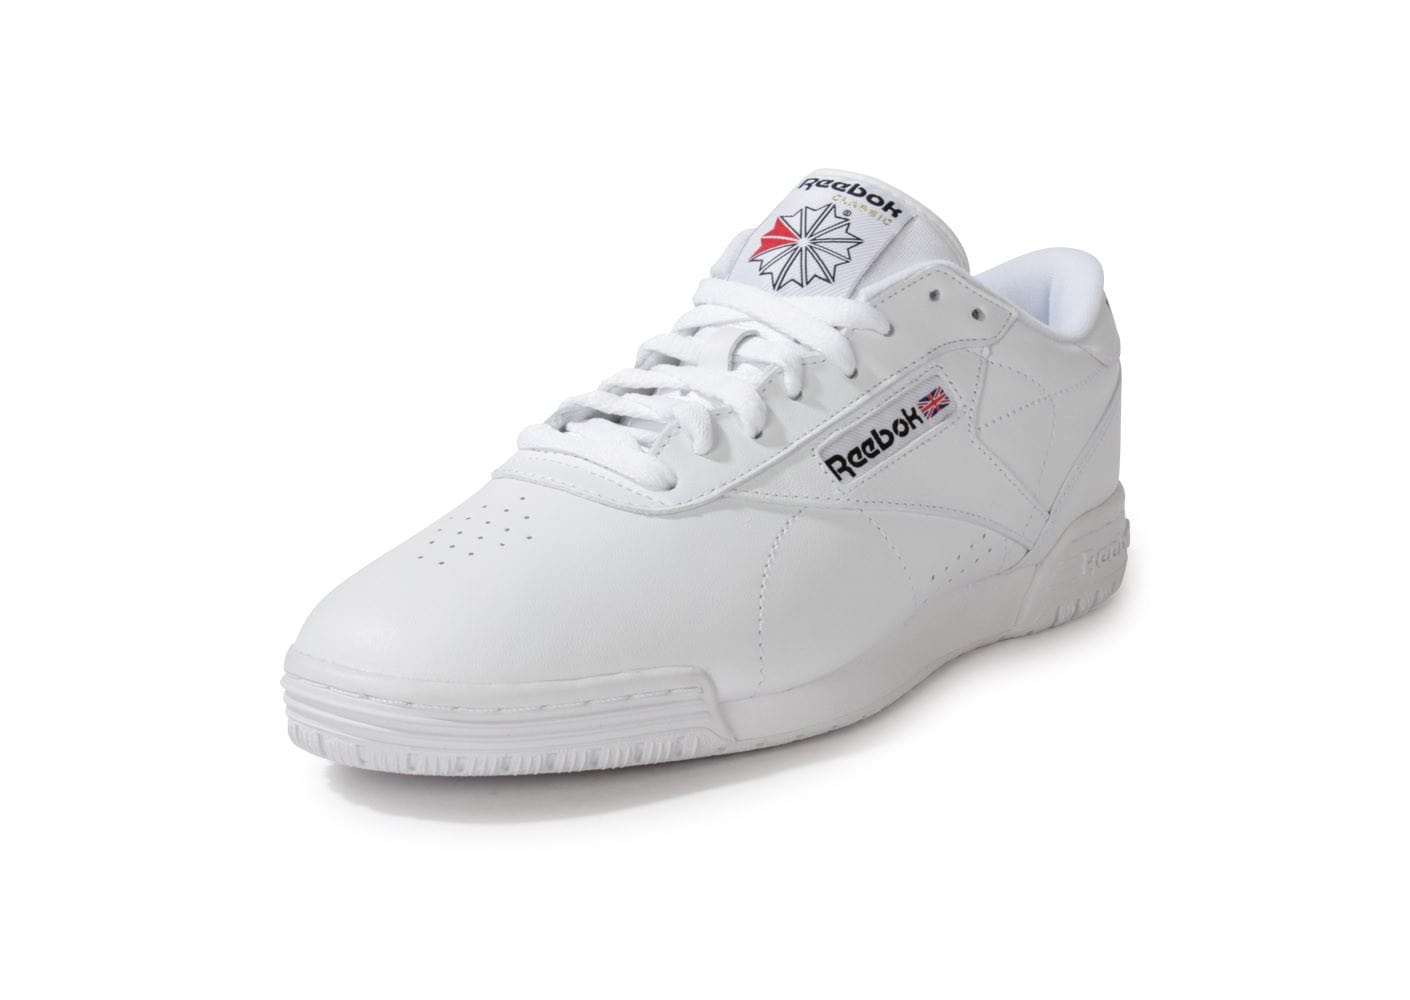 reebok ex o fit lo blanche chaussures homme chausport. Black Bedroom Furniture Sets. Home Design Ideas